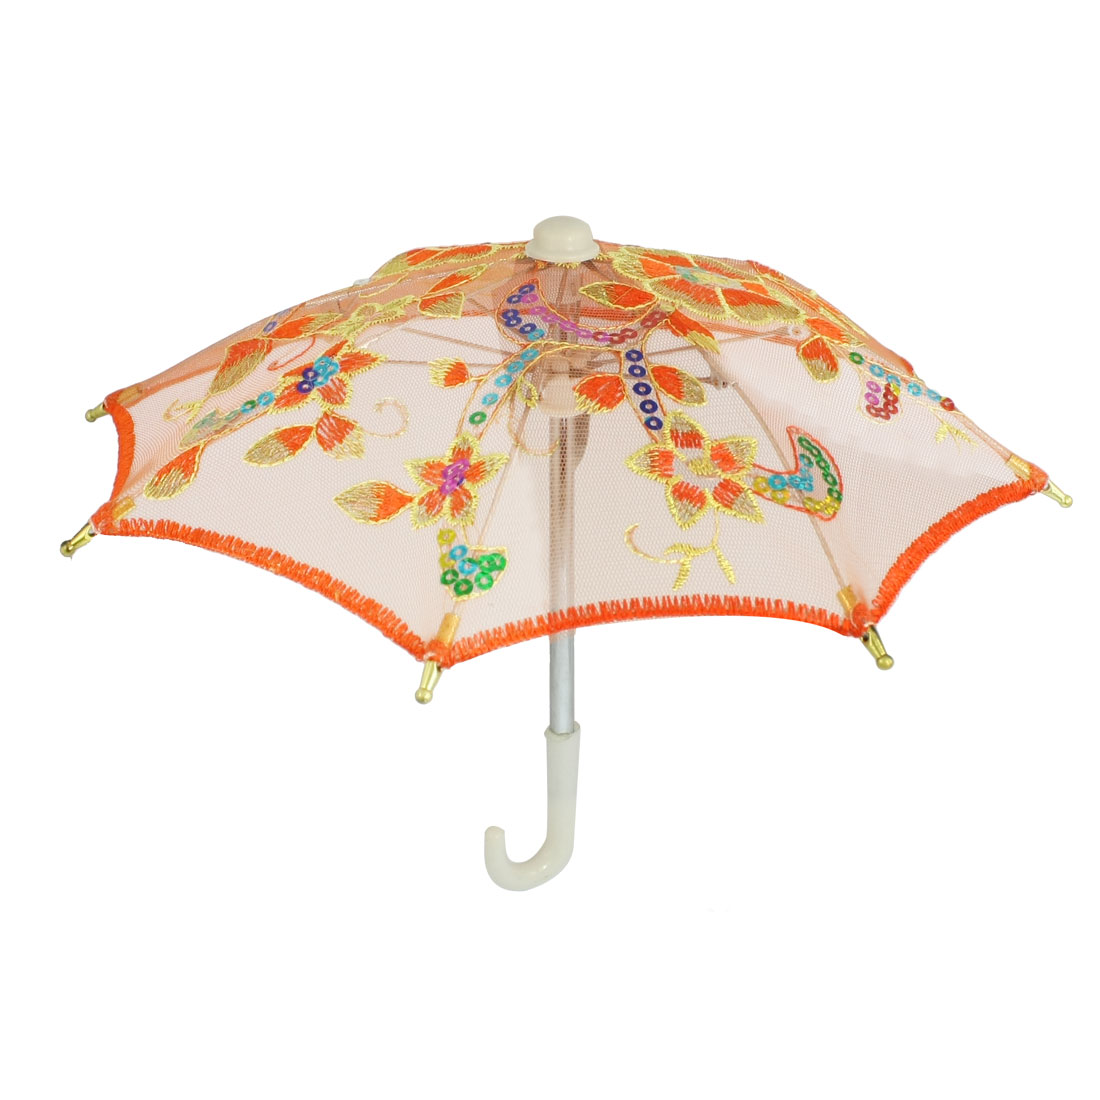 Orange Embroider Flower Pattern Folding Mini Lace Umbrella Toy for Child